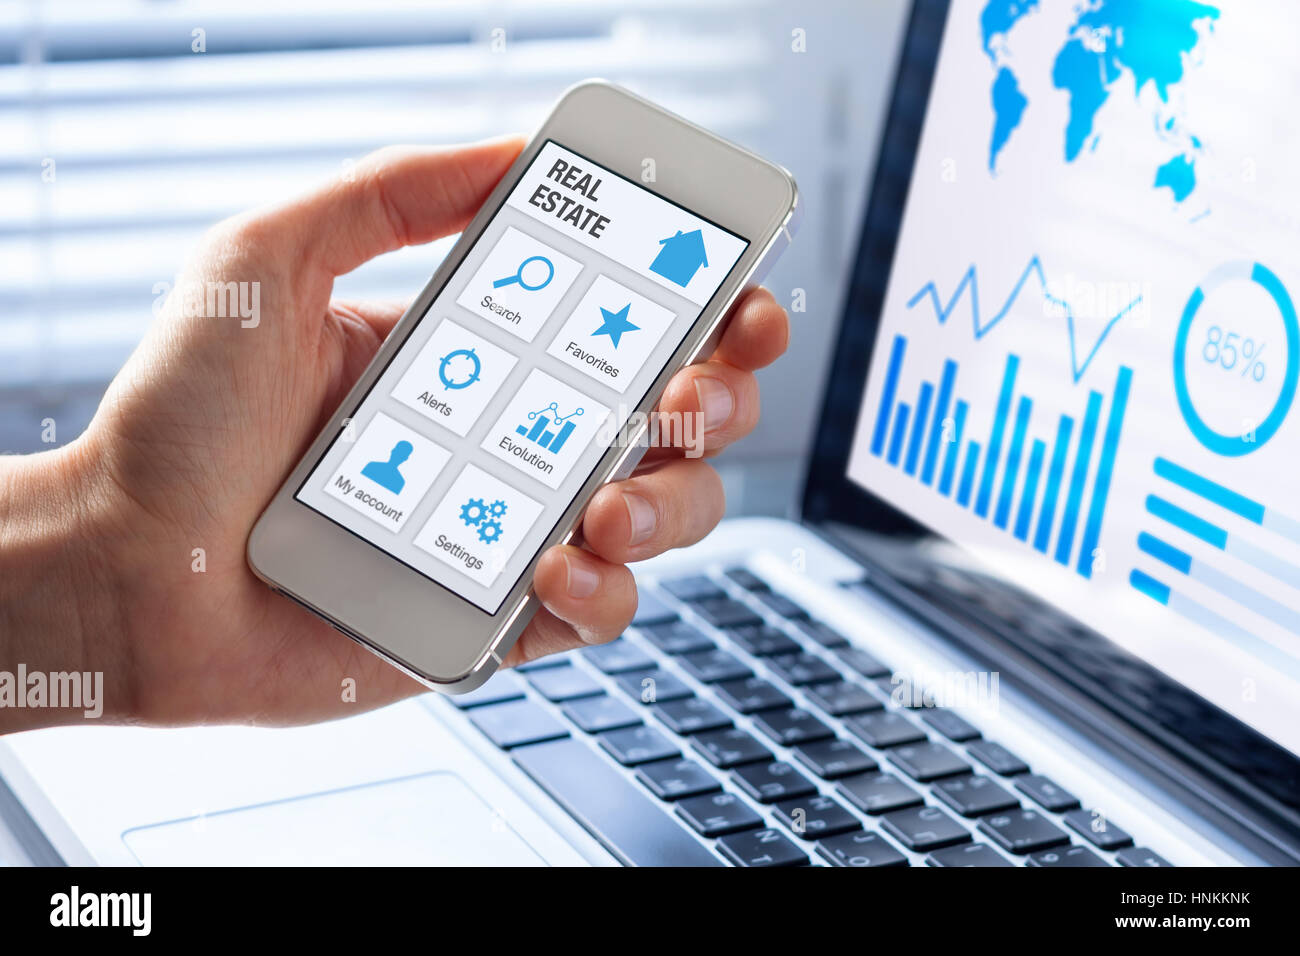 Real estate app concept on a mobile phone screen, person searching a house, apartment or property to buy or rent Stock Photo